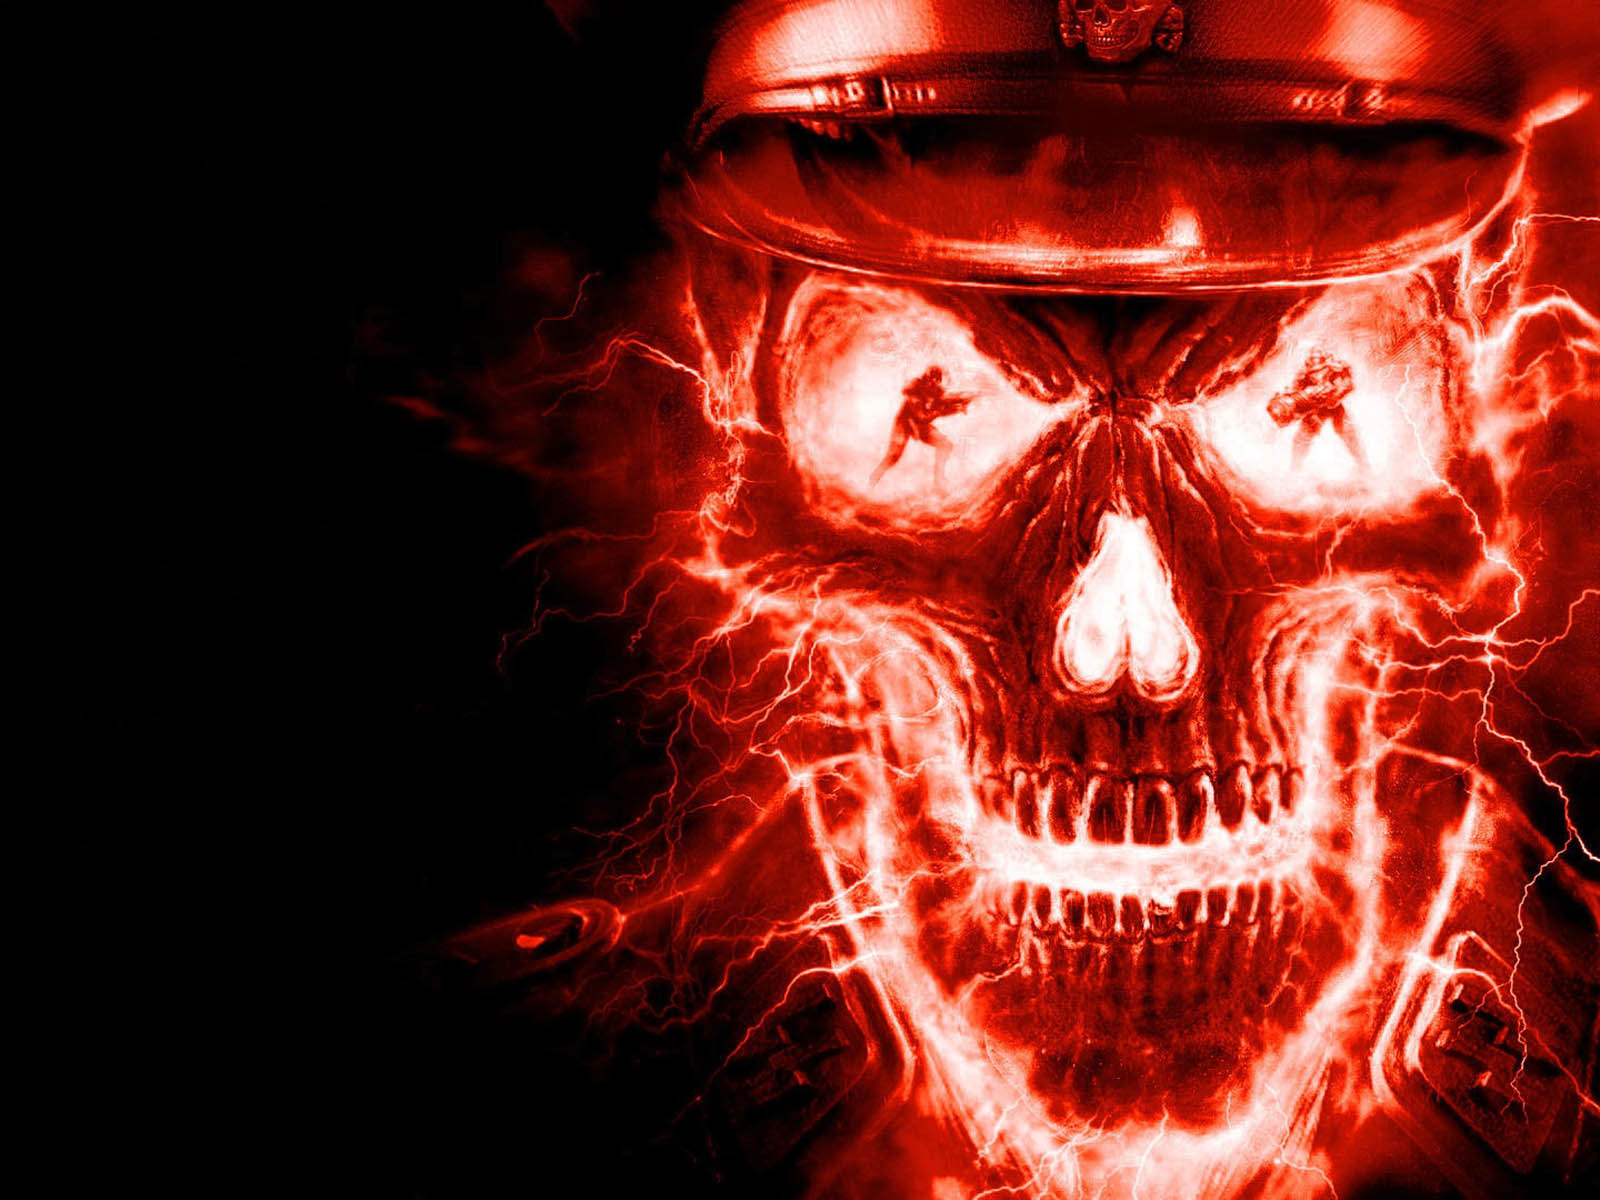 49 ] Free 3d Skull Wallpaper On WallpaperSafari